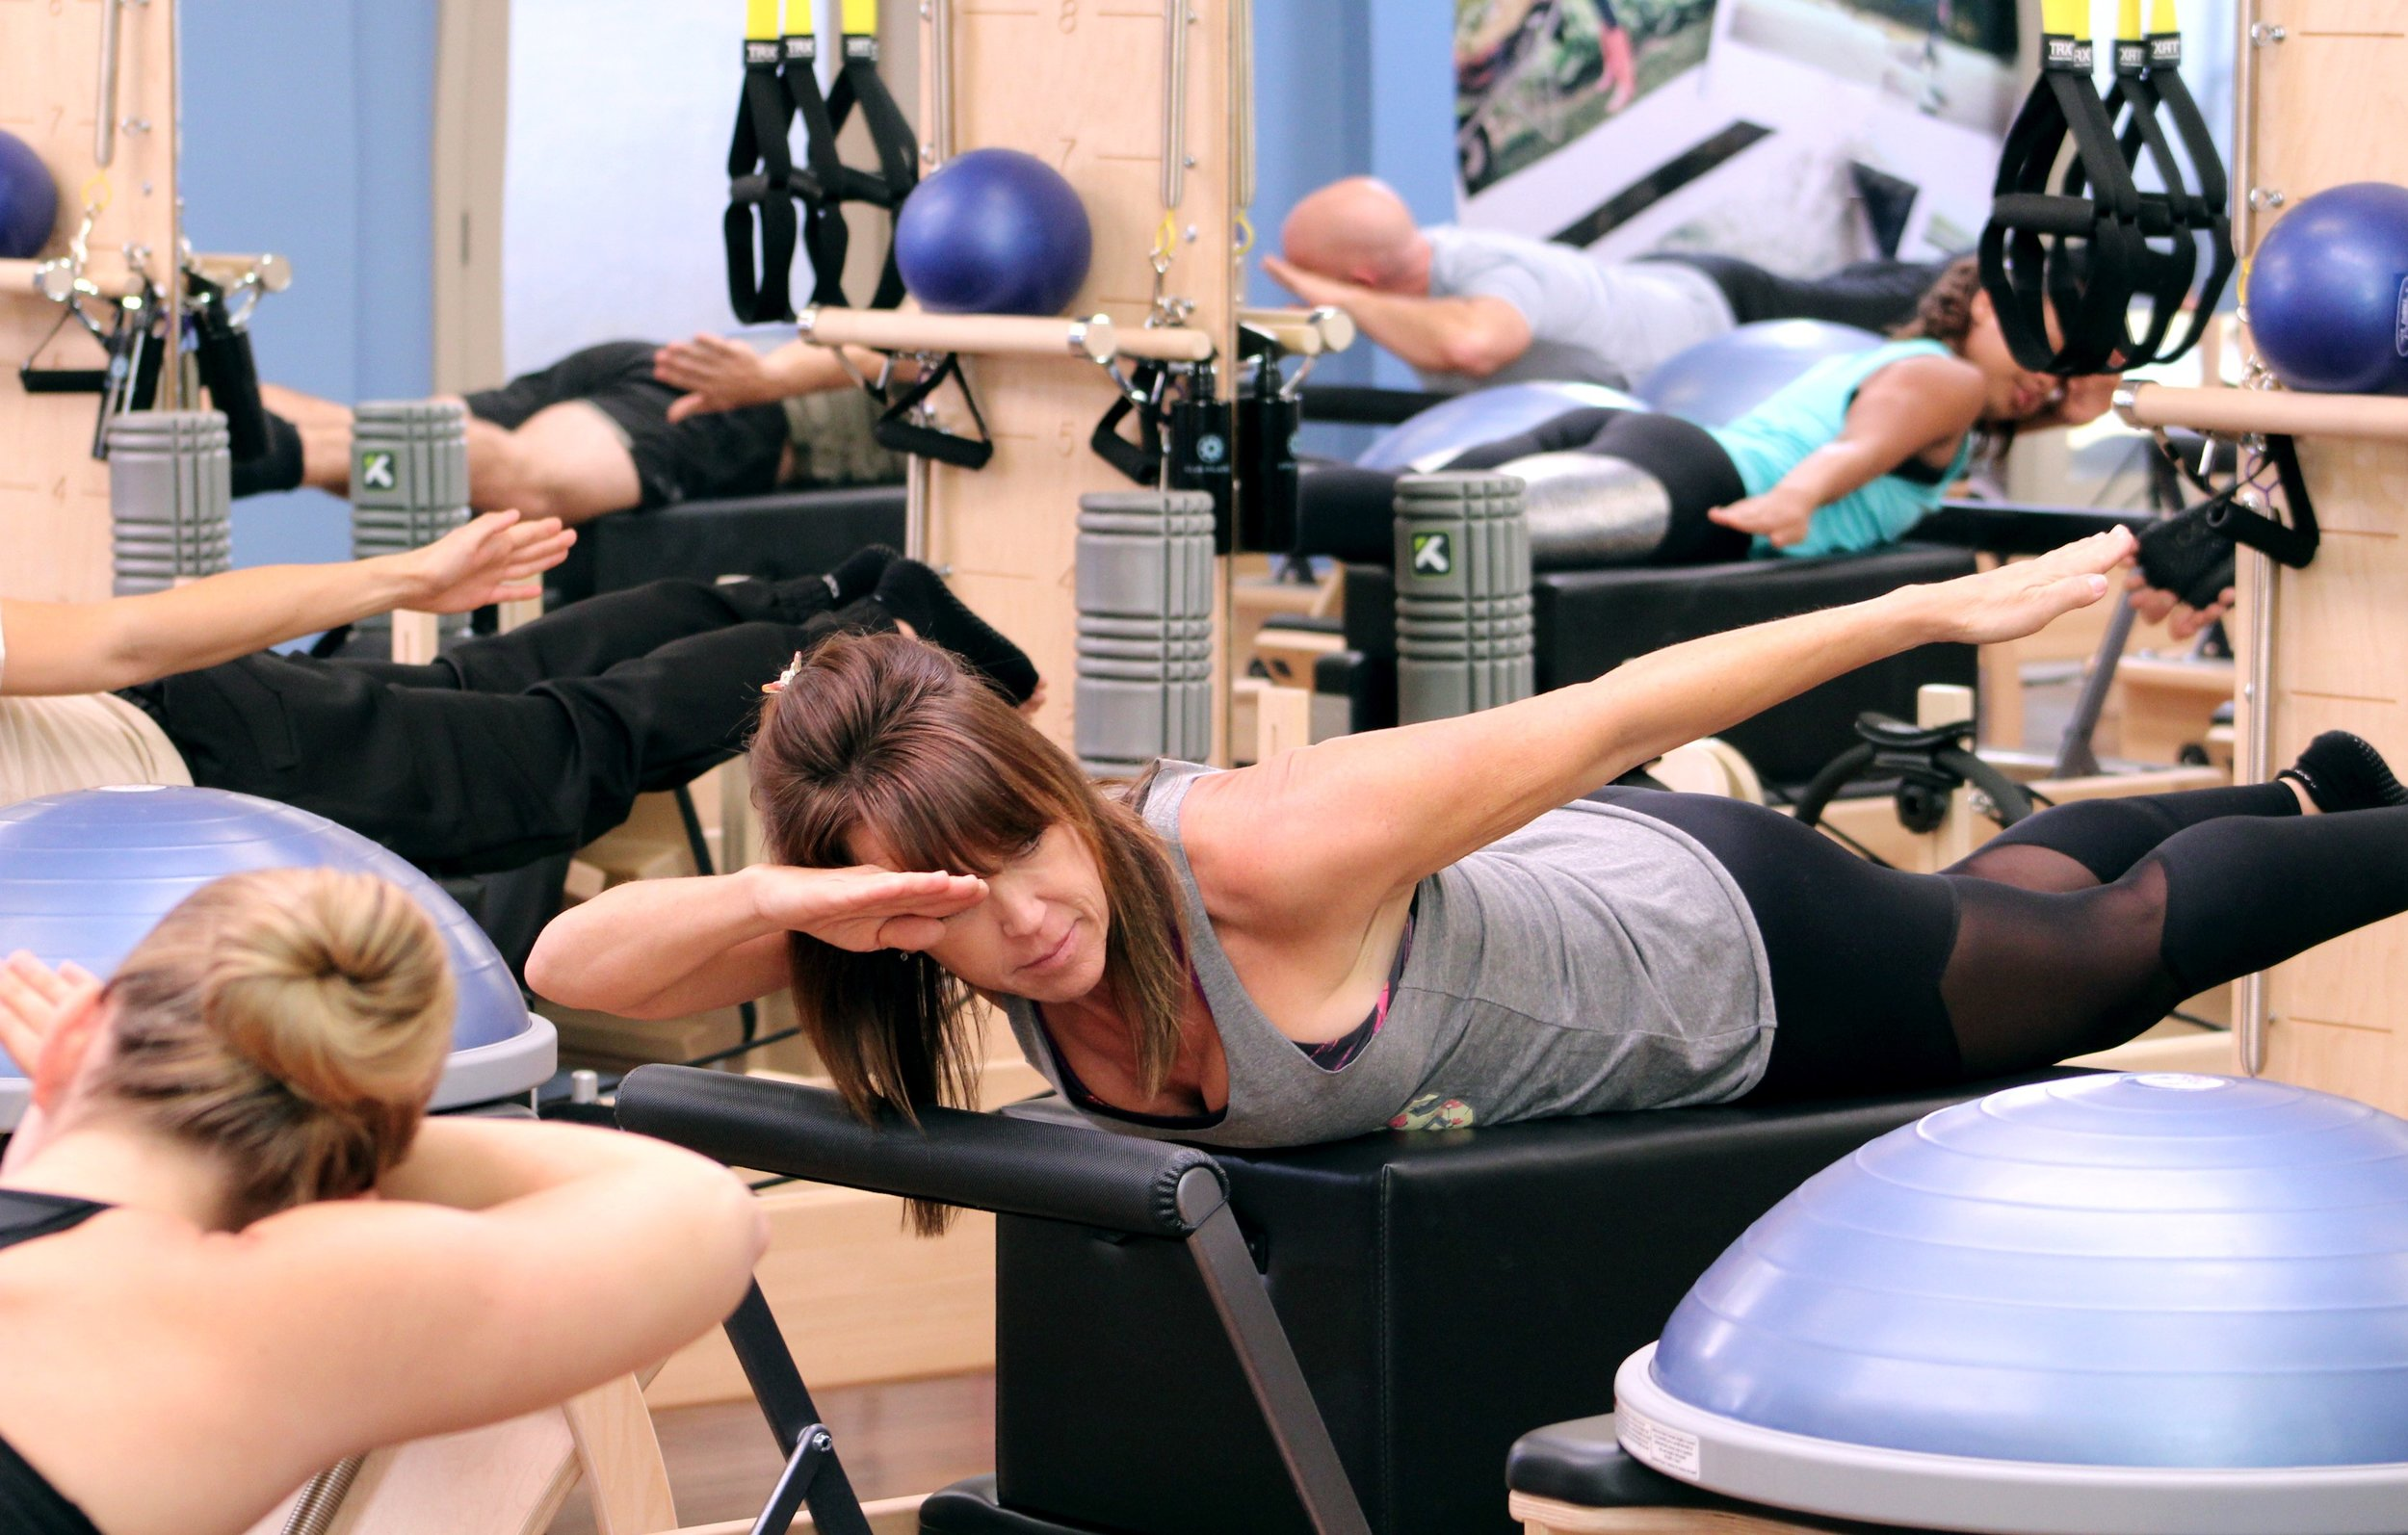 Club pilates photo 2.jpg